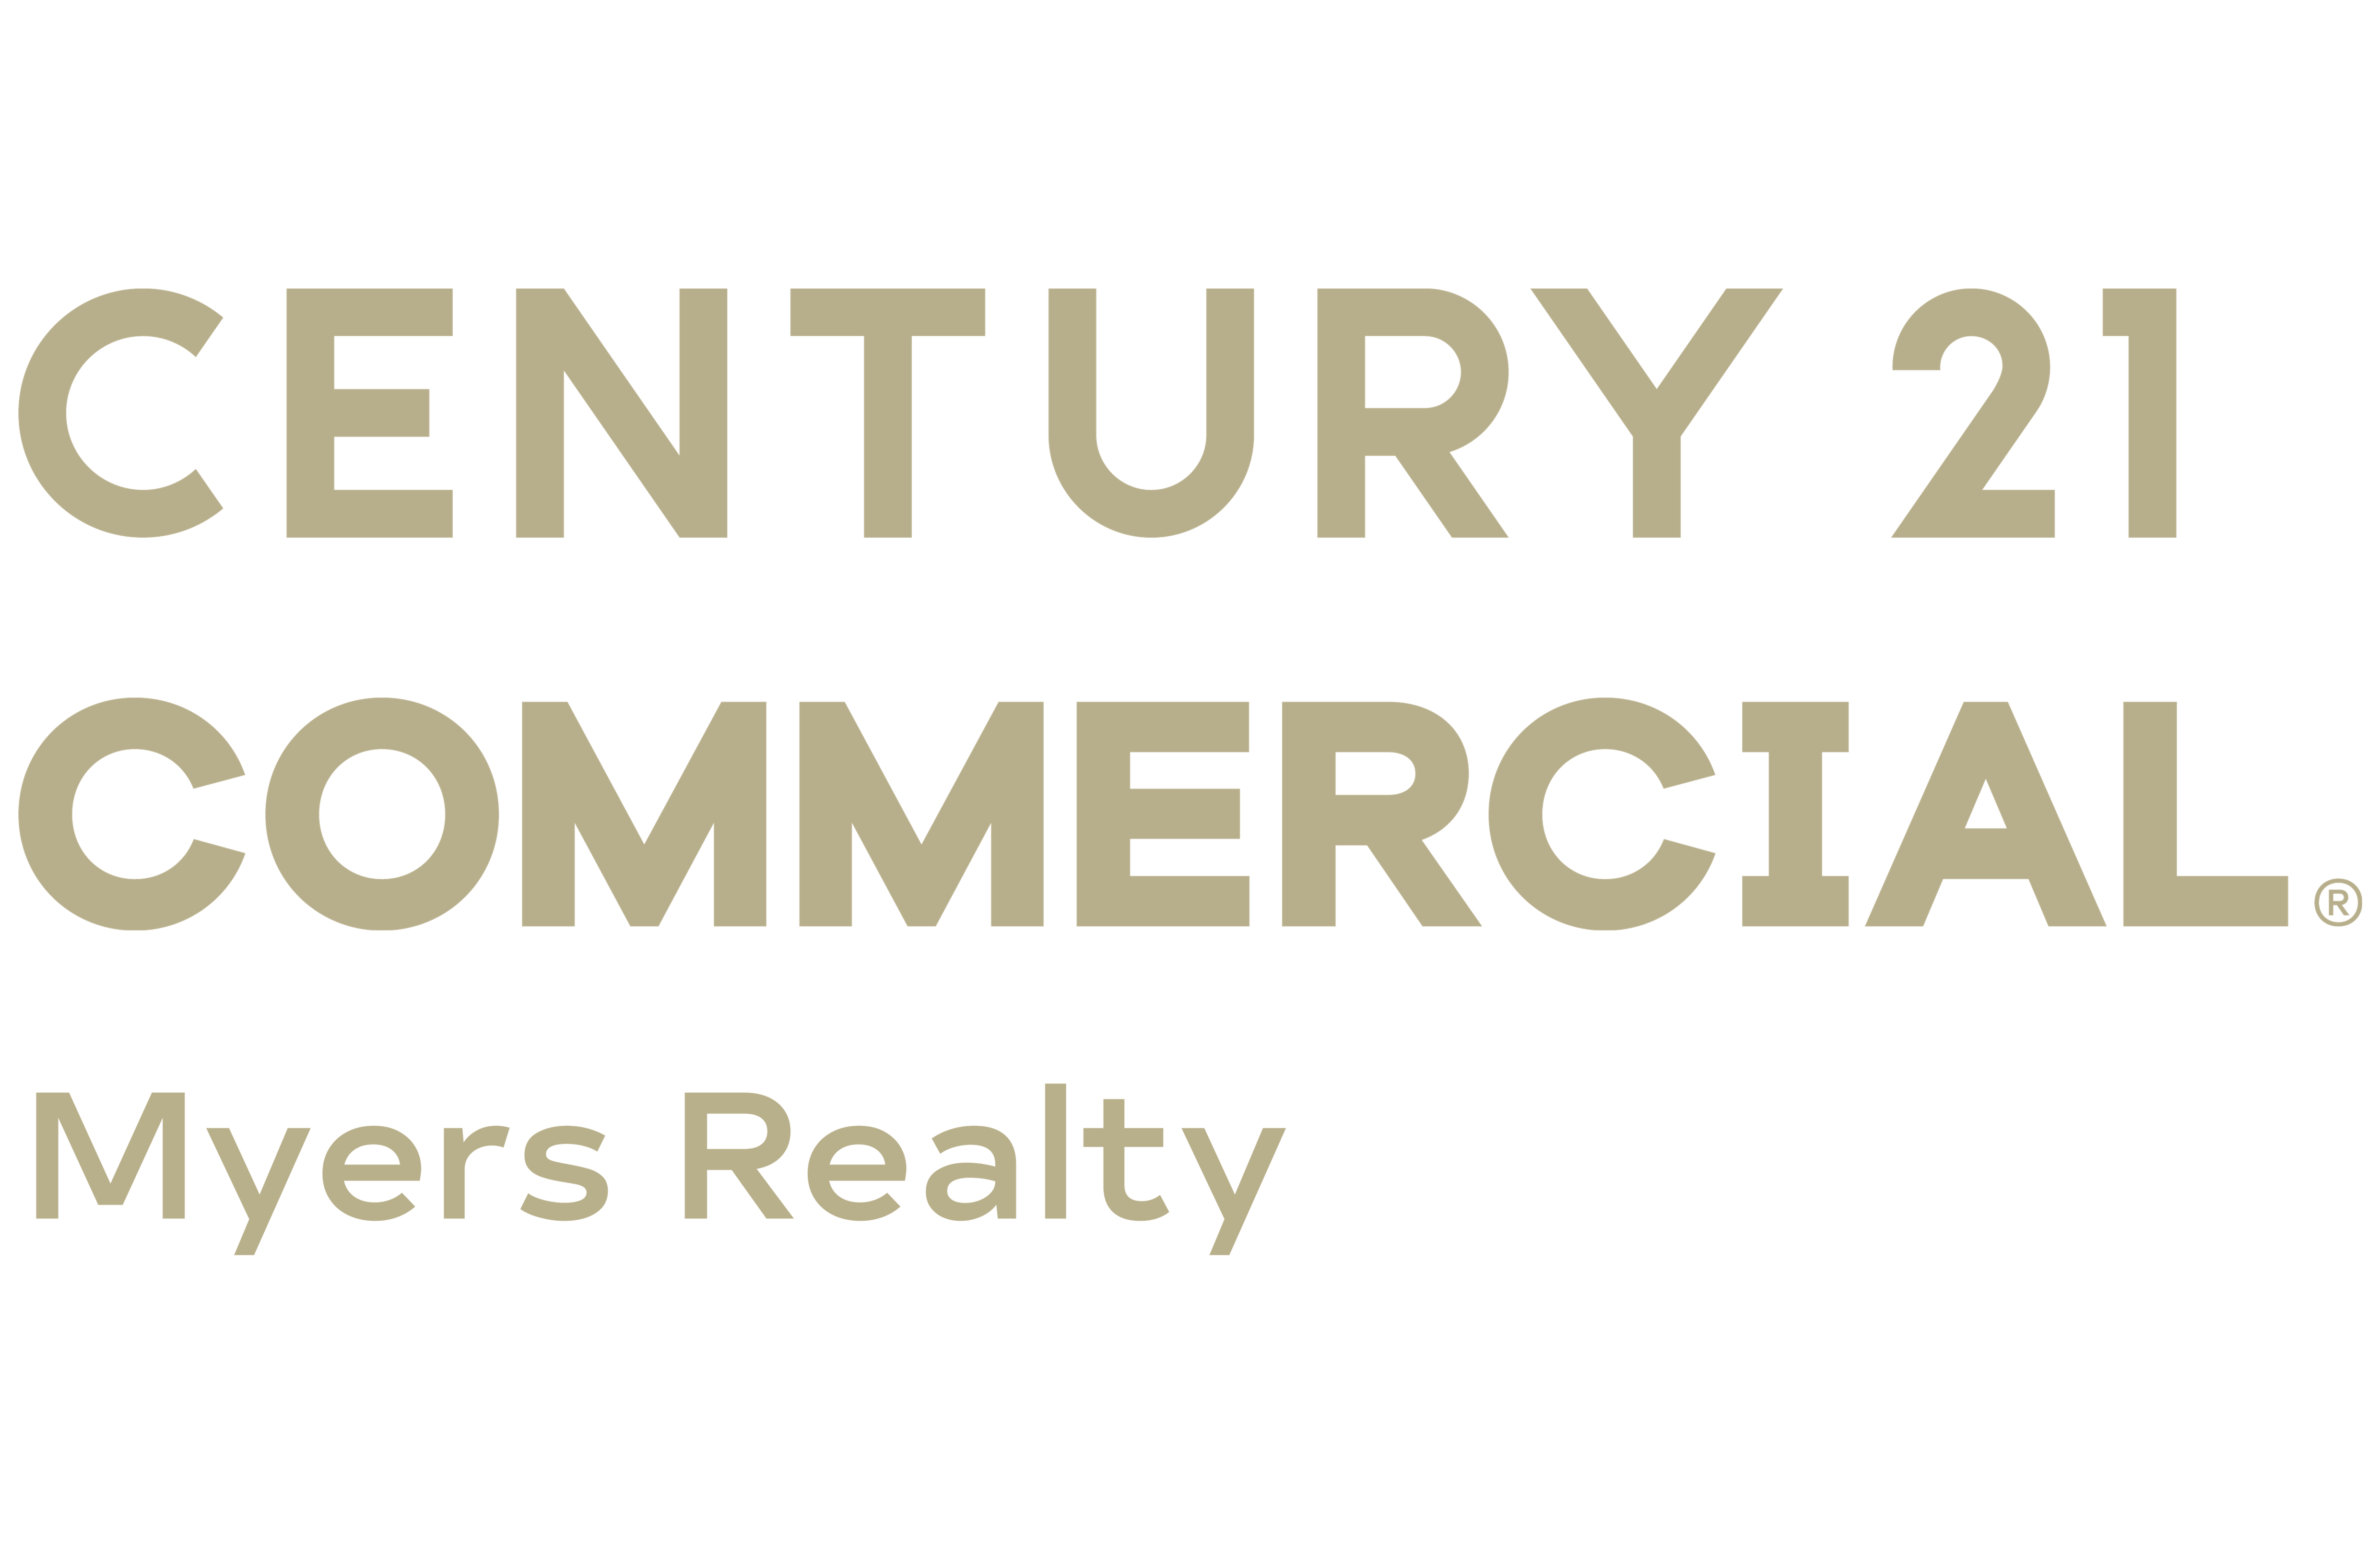 CENTURY 21 Myers Realty